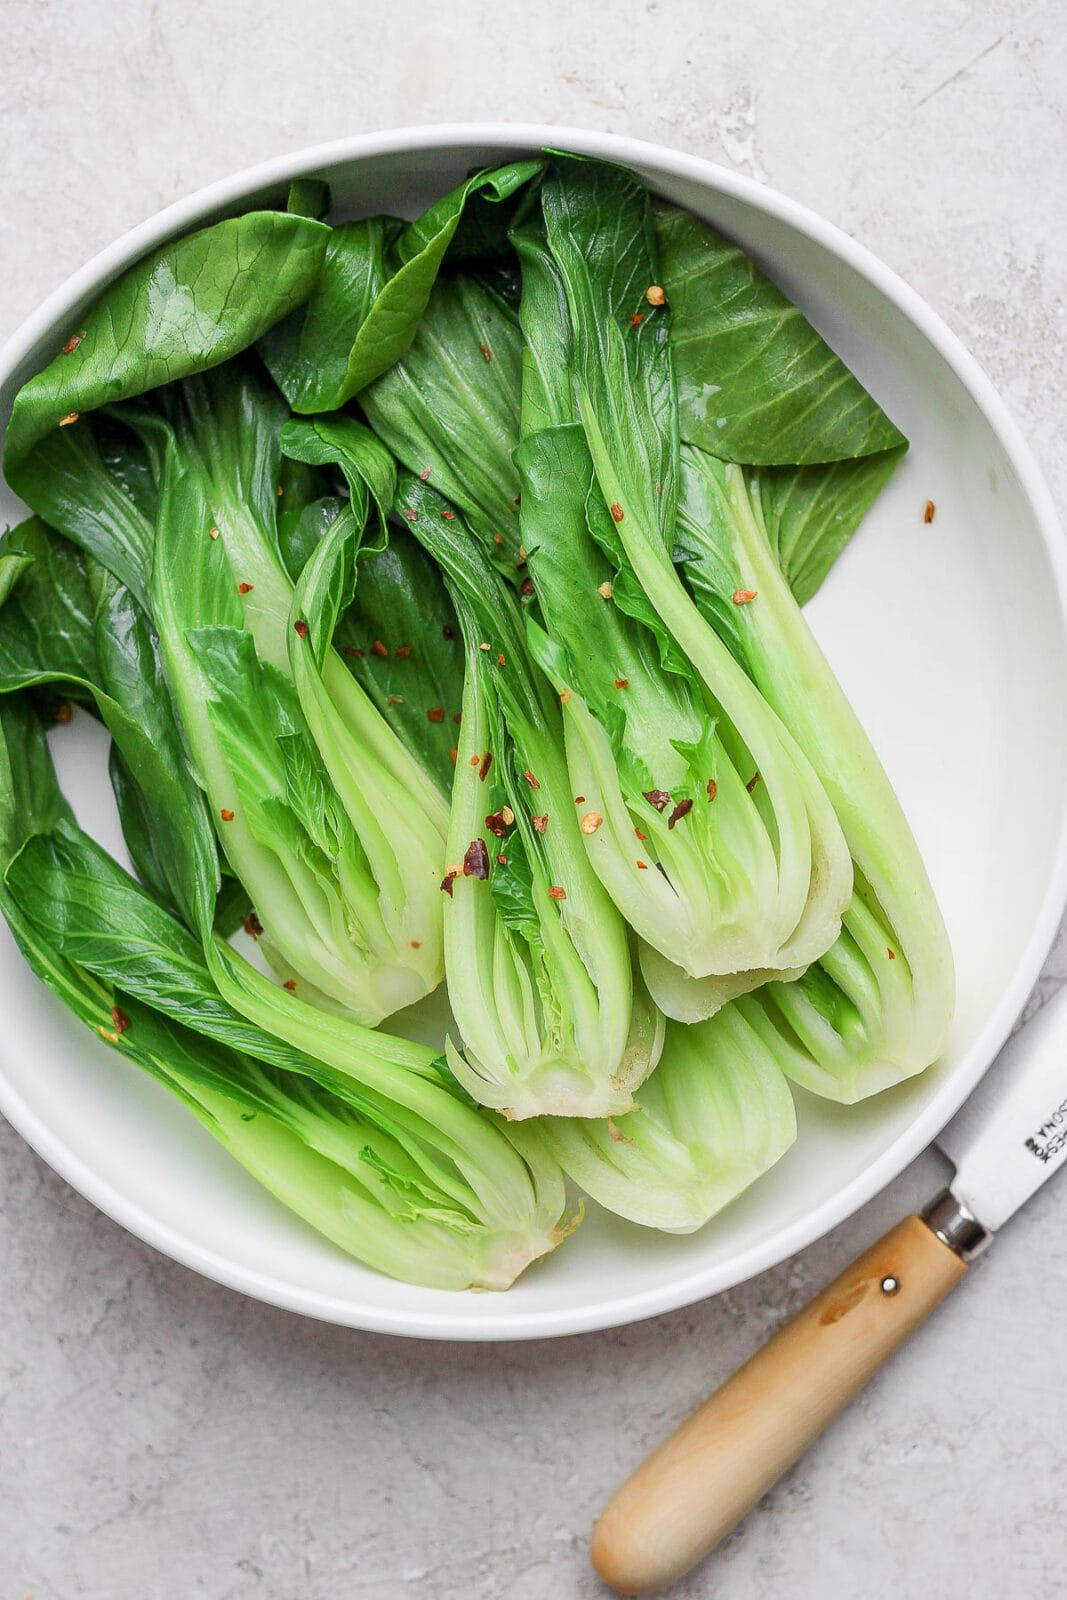 Cooked bok choy on a plate.